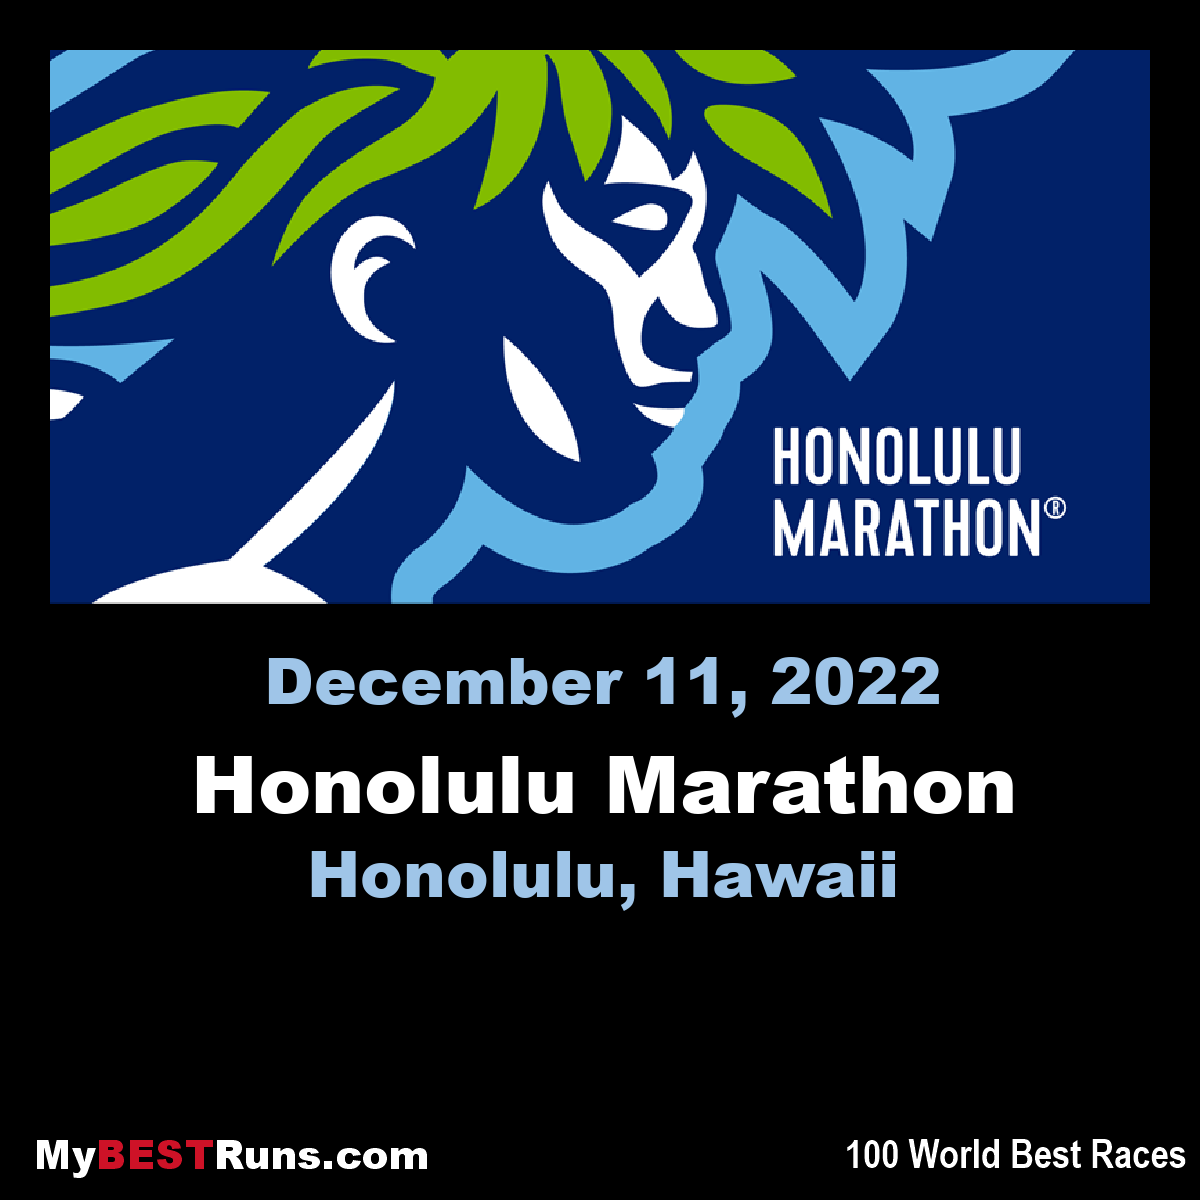 Honolulu Marathon